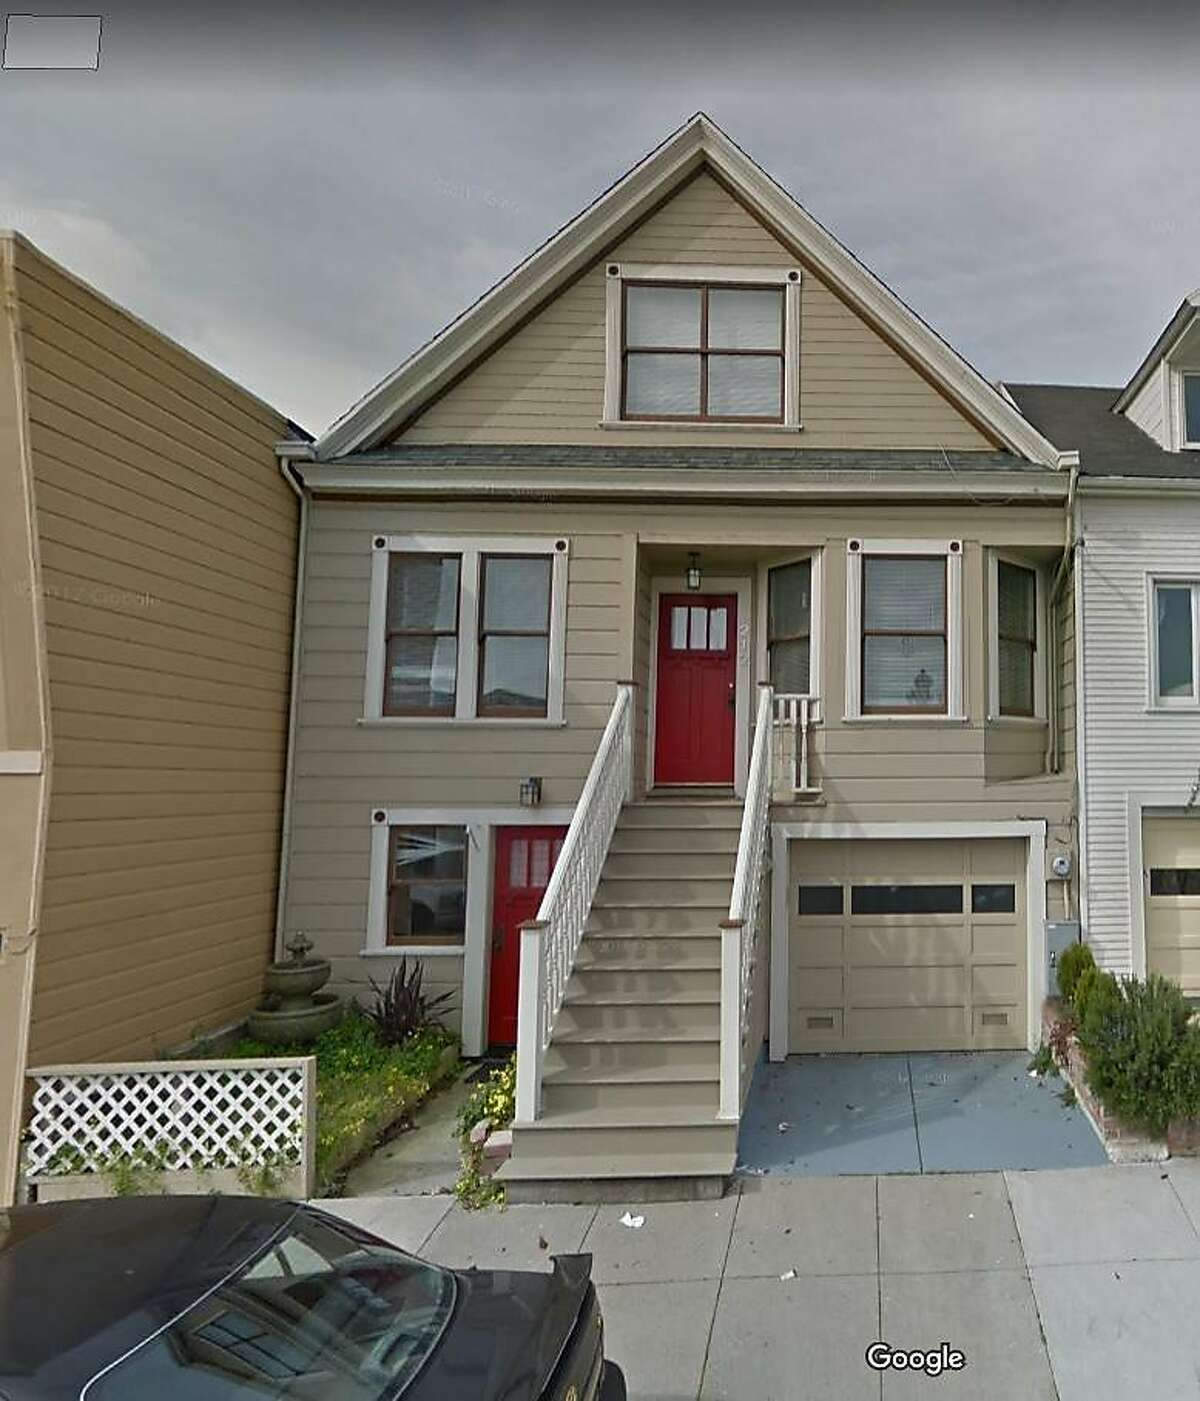 This home located at 212 Banks Street in San Francisco, Calif. is where a shootout occurred involving tenants who had rented the property through Air BnB. The home had been allegedly illegally converted to two rental units and were being rented out by the owners, who lived in Bali, Indonesia. The owners were fined $185,000 in civil penalties for the illegal conversion.